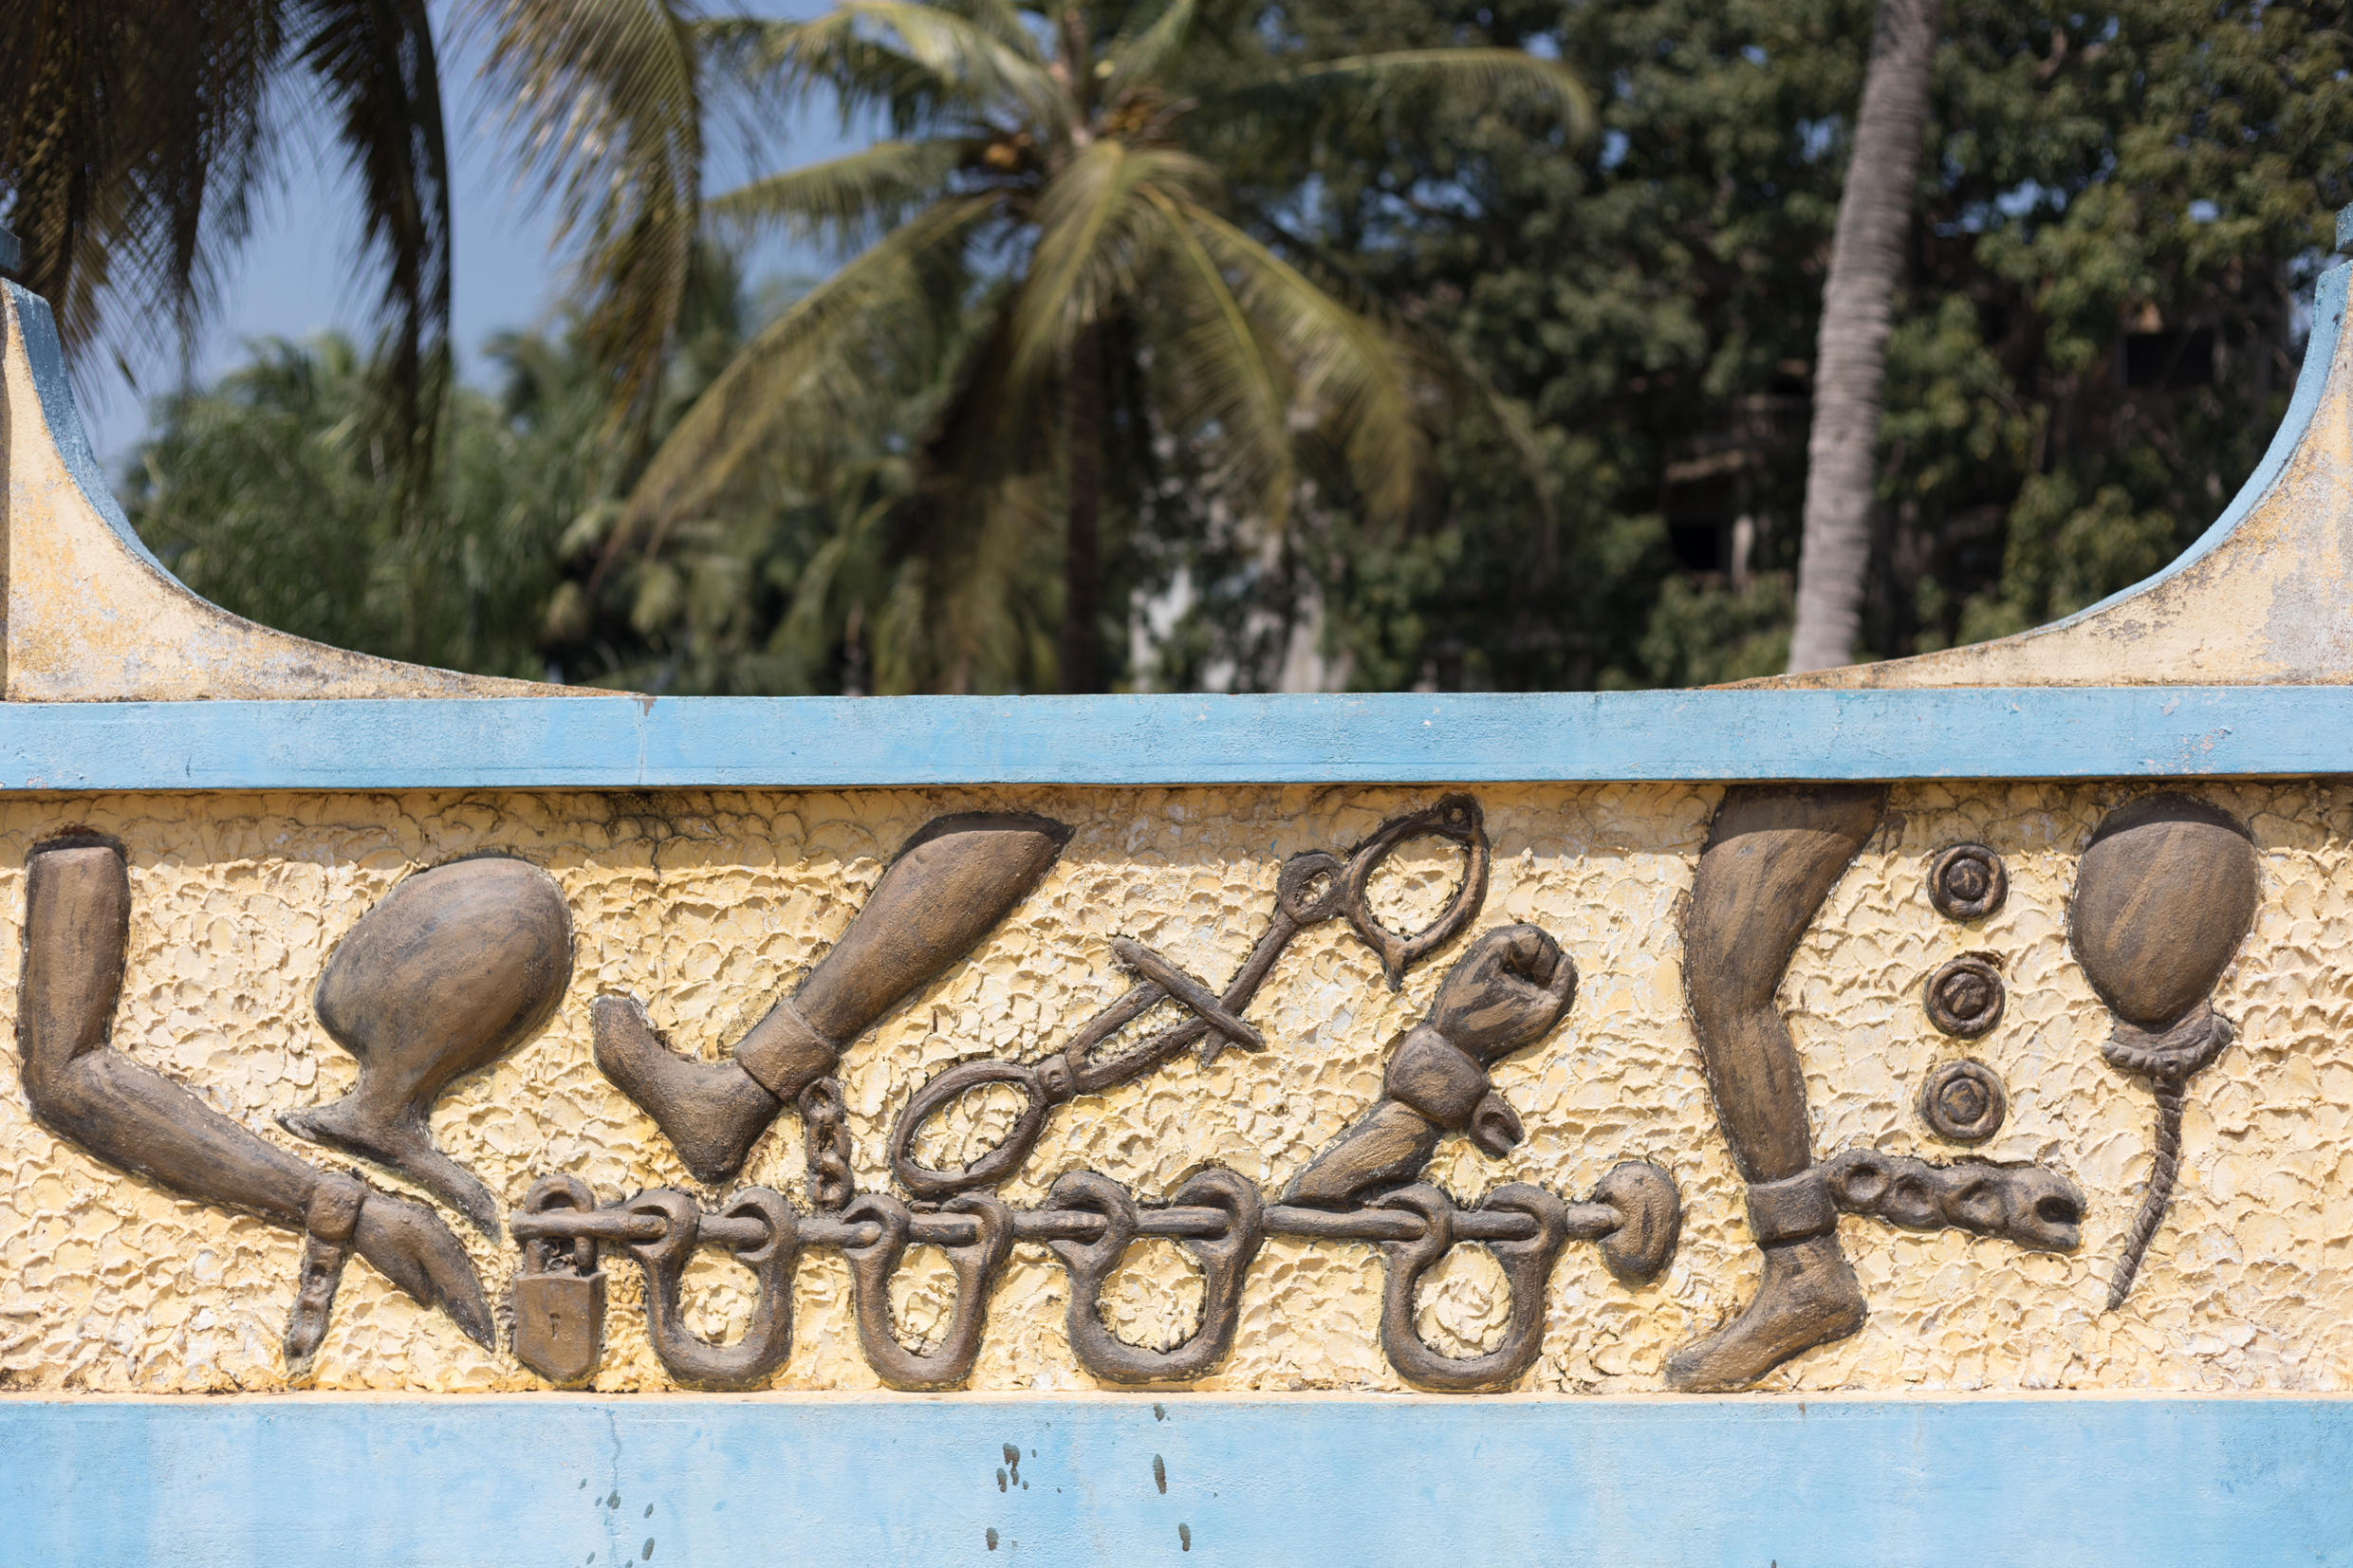 Chained: The Zomachi memorial in Ouidah reminds the world of the curse of slavery